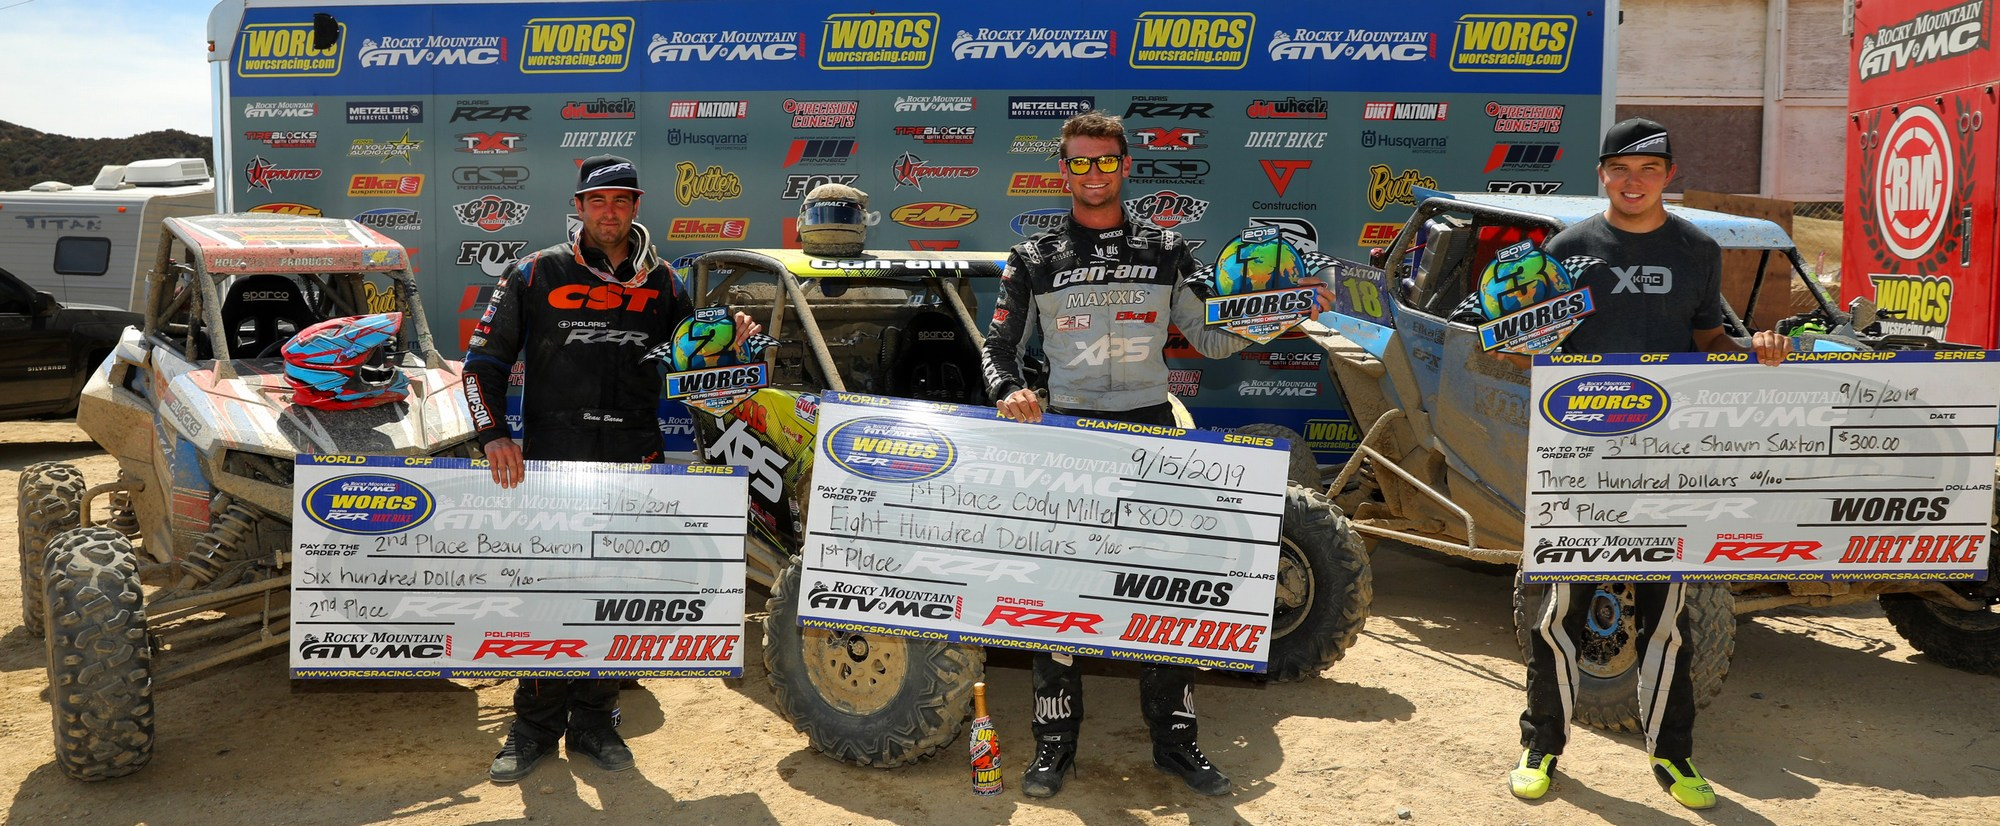 2019-06-podium-sxs-worcs-racing